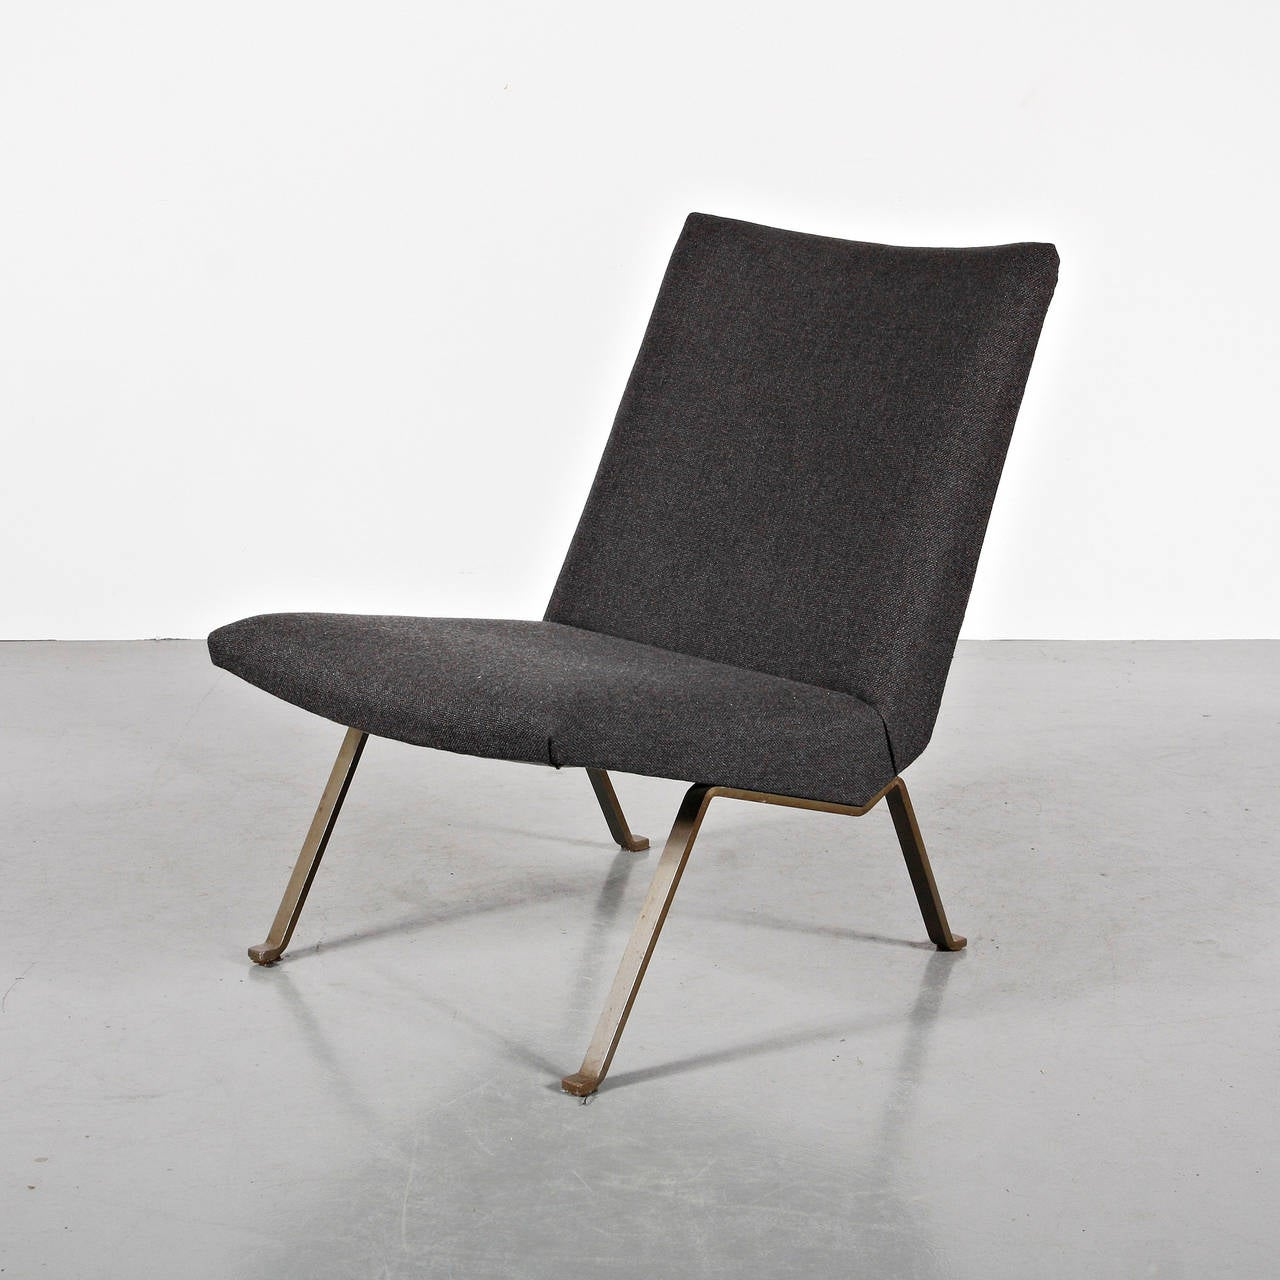 Easy Chair designed by Koene Oberman around 1950.